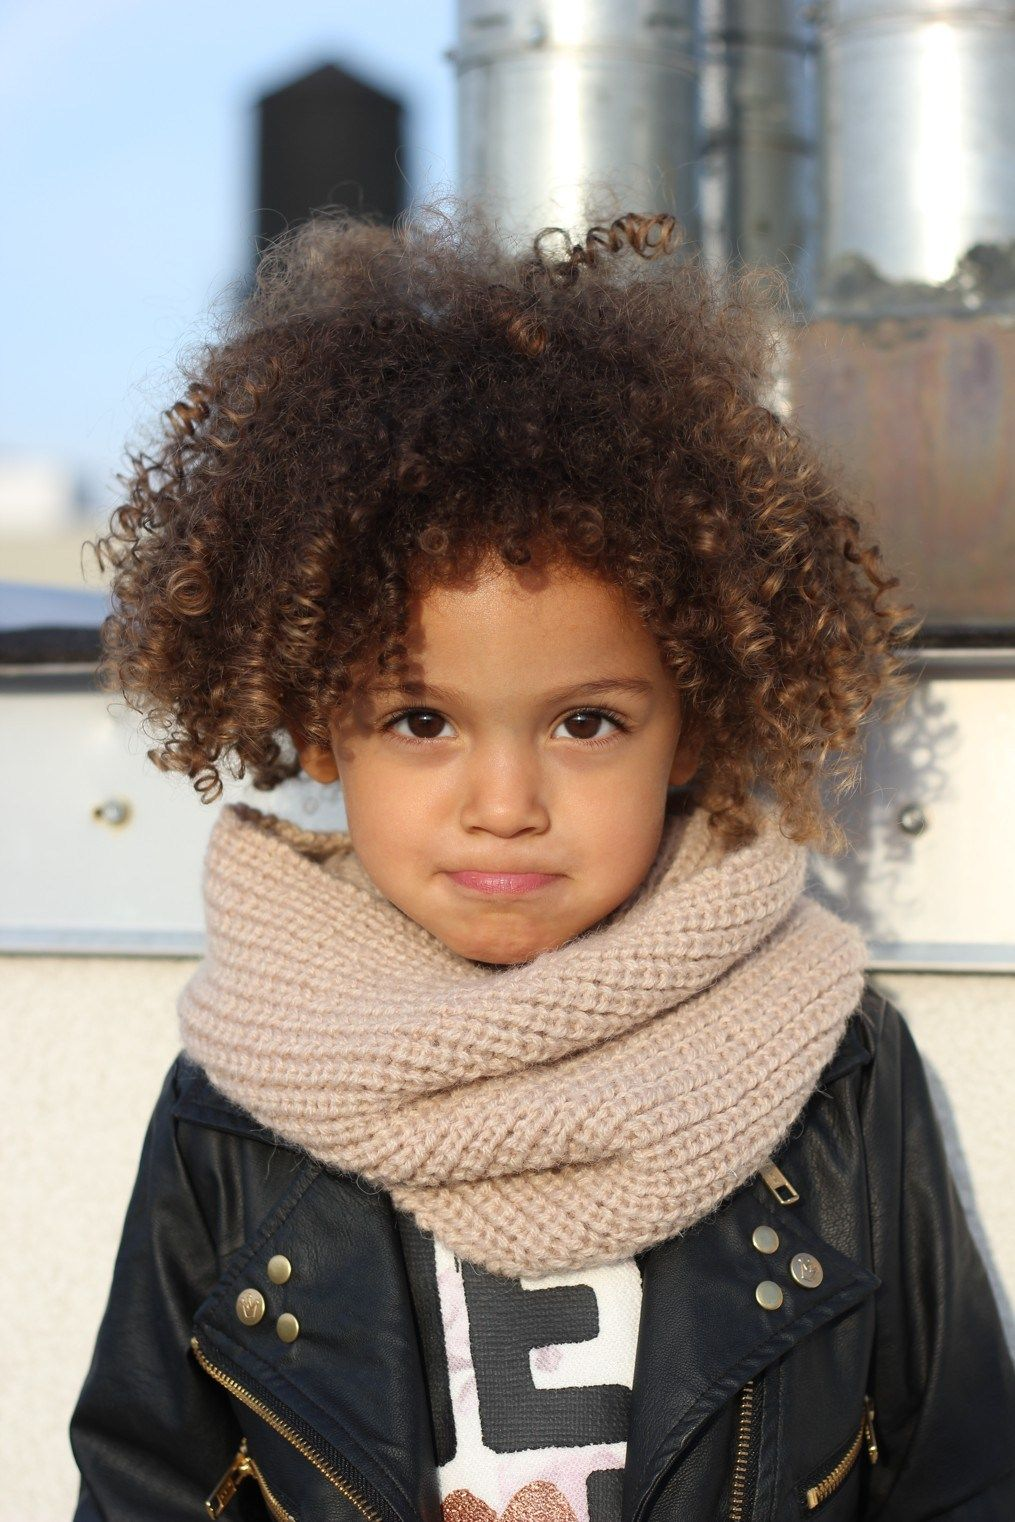 Get Layered Scout The City Inc Curly Hair Baby Boy Curly Hair Baby Cute Curly Hairstyles